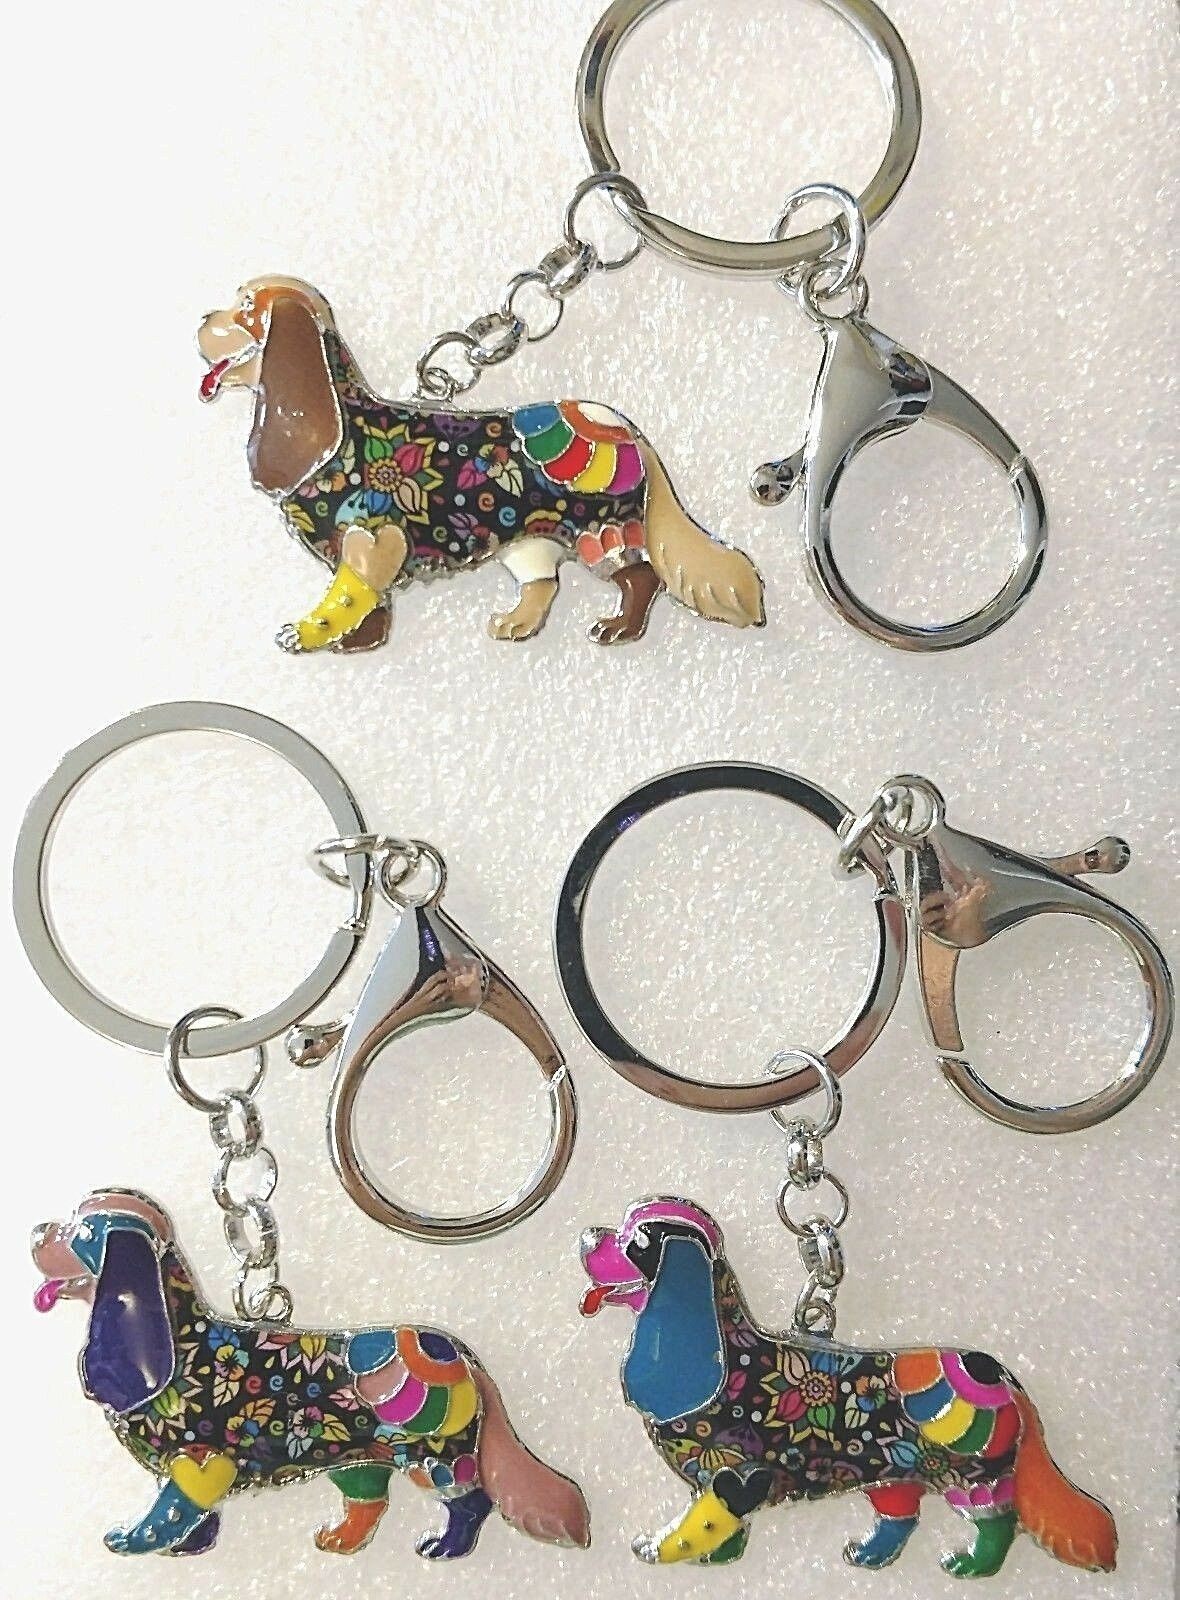 Cavalier King Charles Spaniel Dog Multicolor Enamel Key Ring Keychain Jewelry